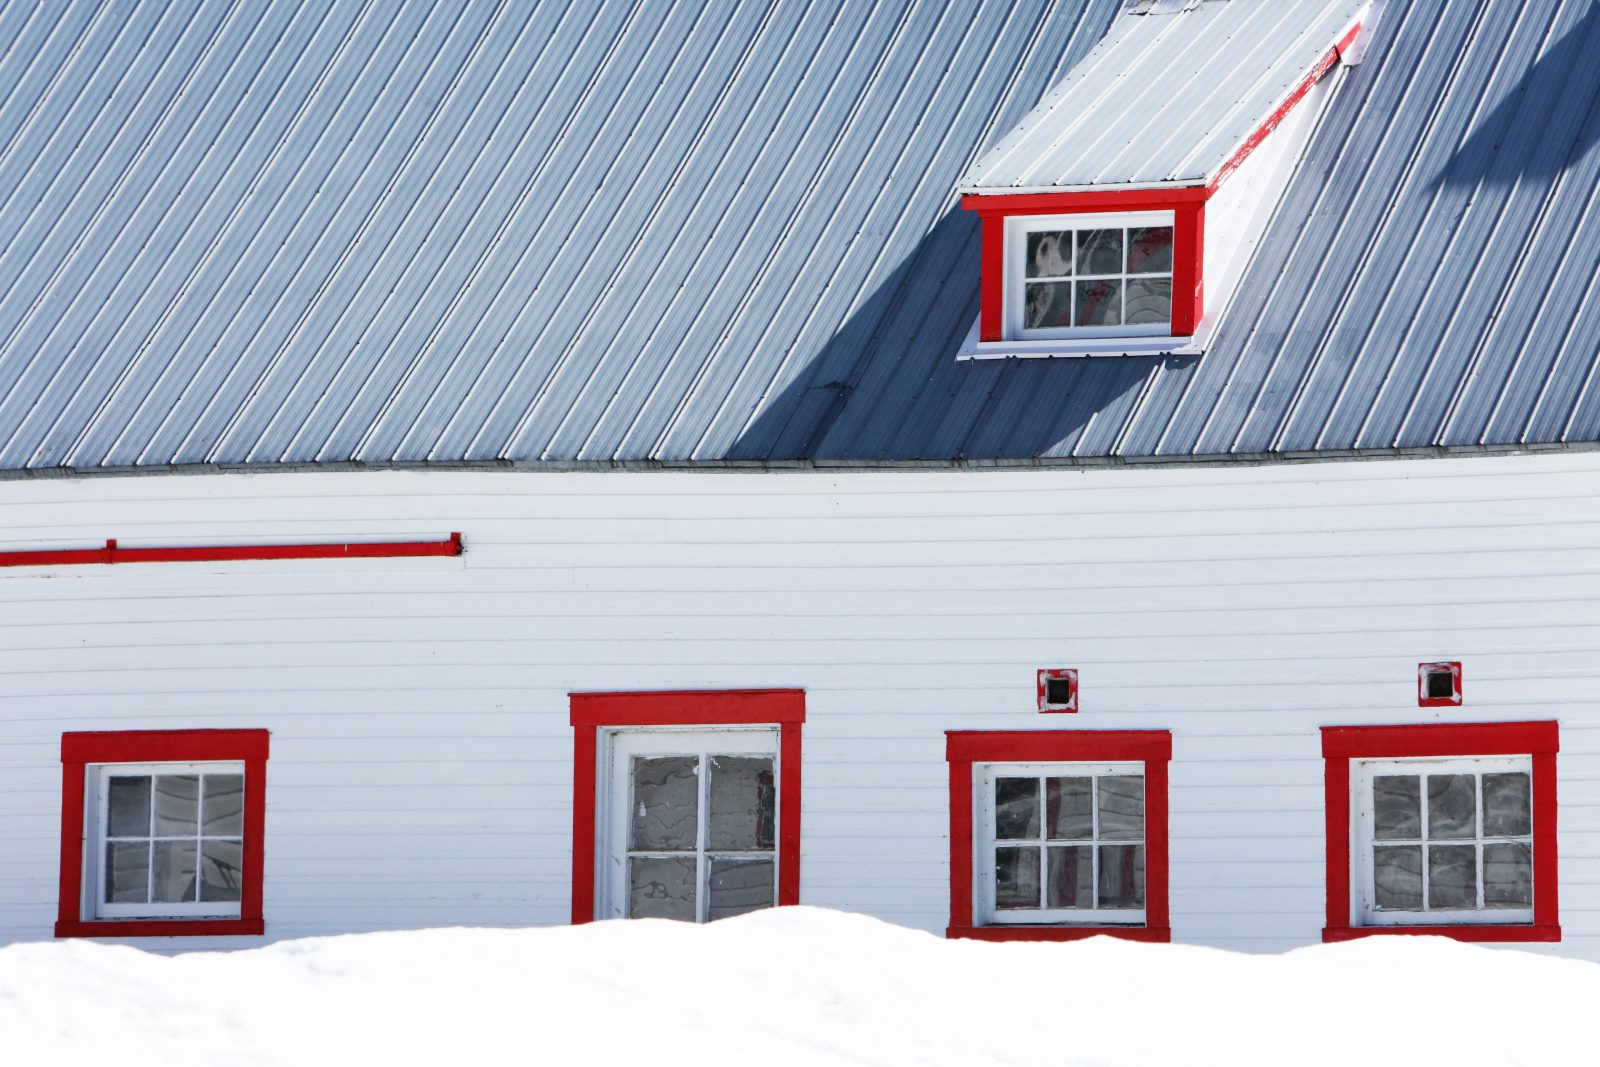 Fresh Red Windows - Free Stock Photos | Life of Pix KG86